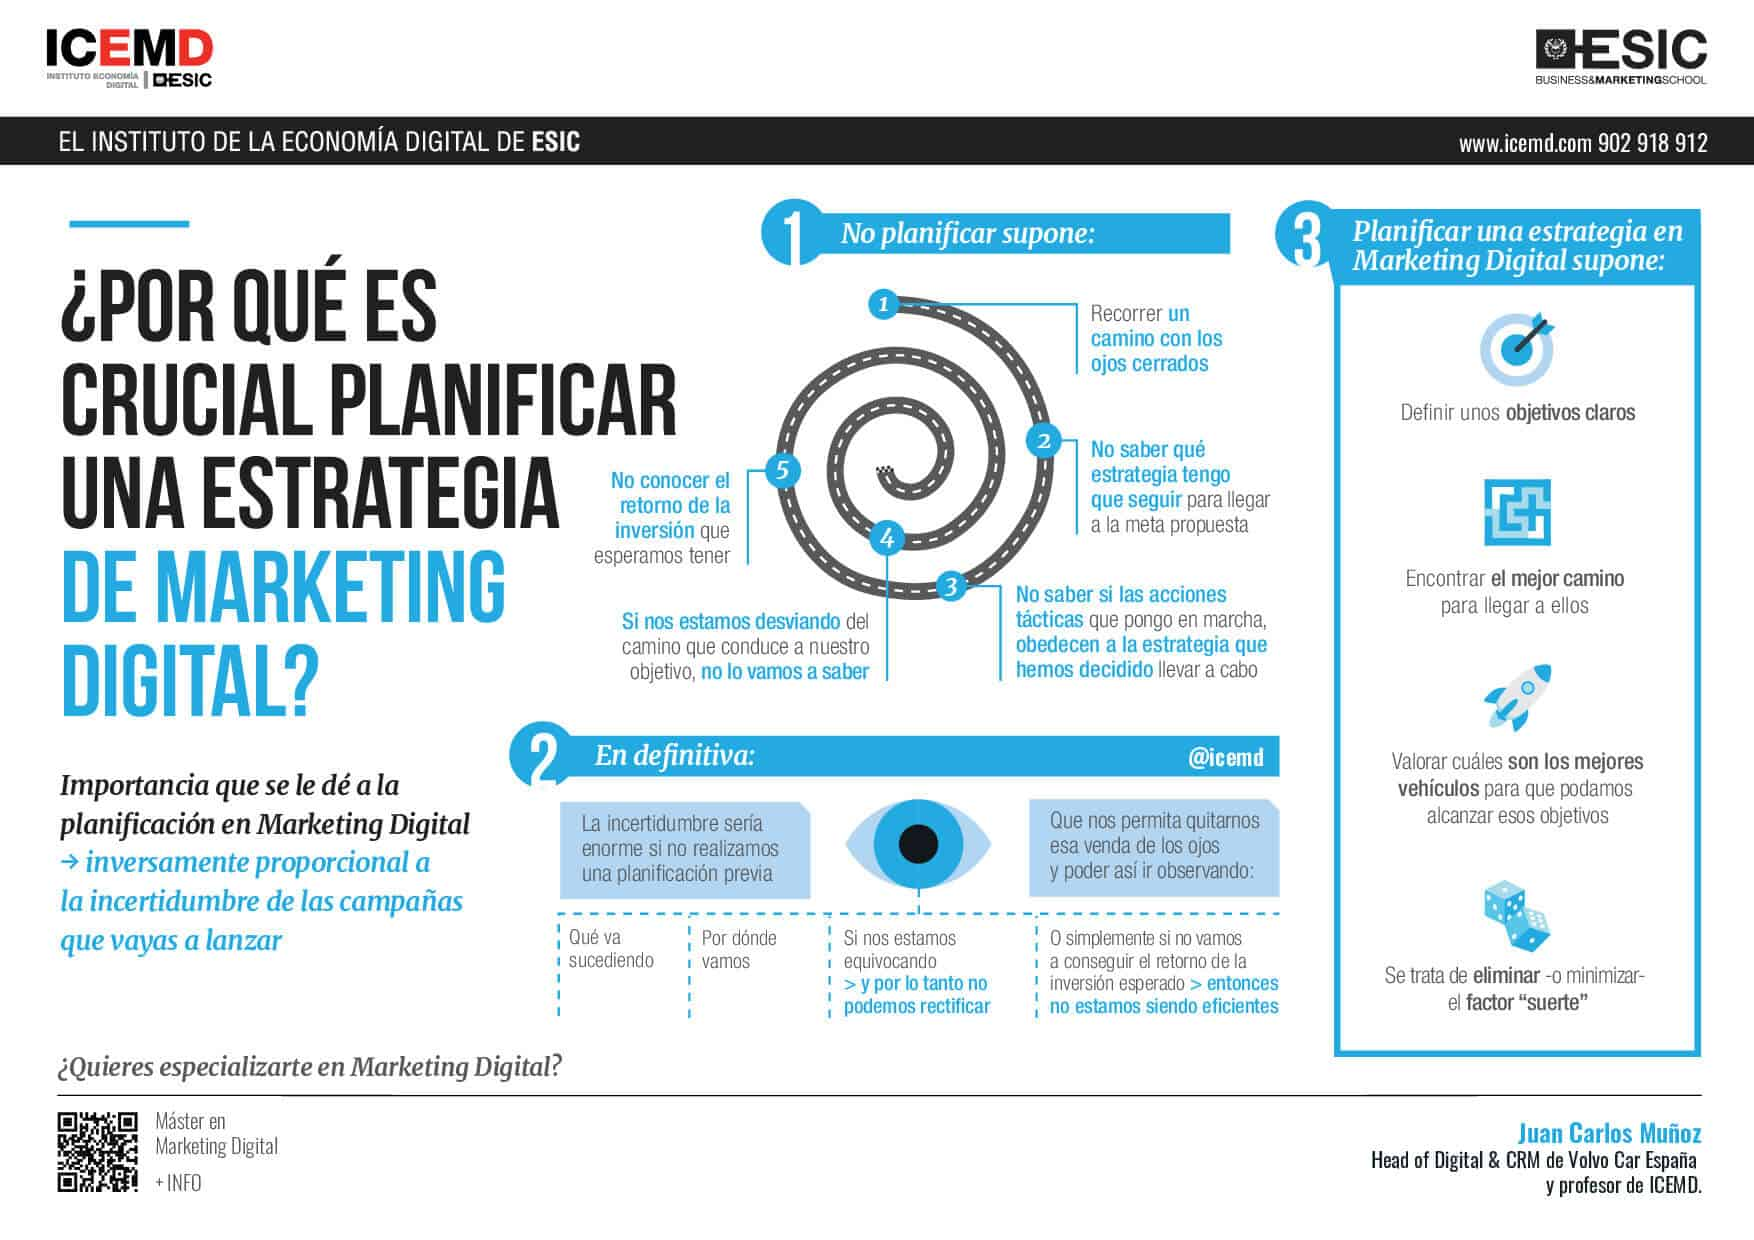 ¿Por qué es crucial planificar una estrategia de marketing digital?